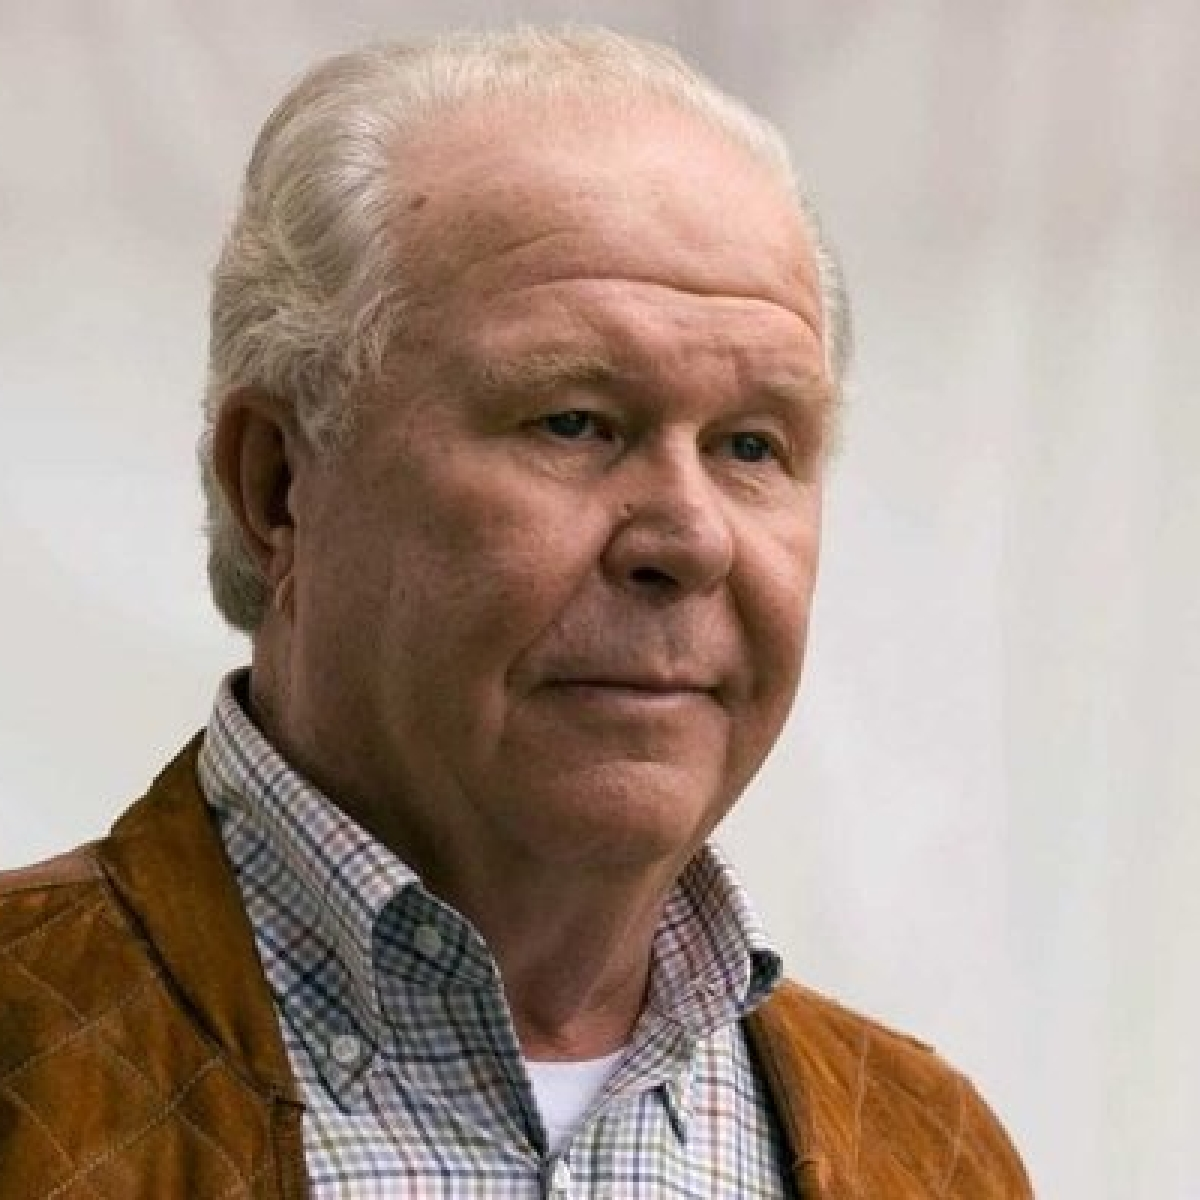 'Superman' actor Ned Beatty passes away at 83